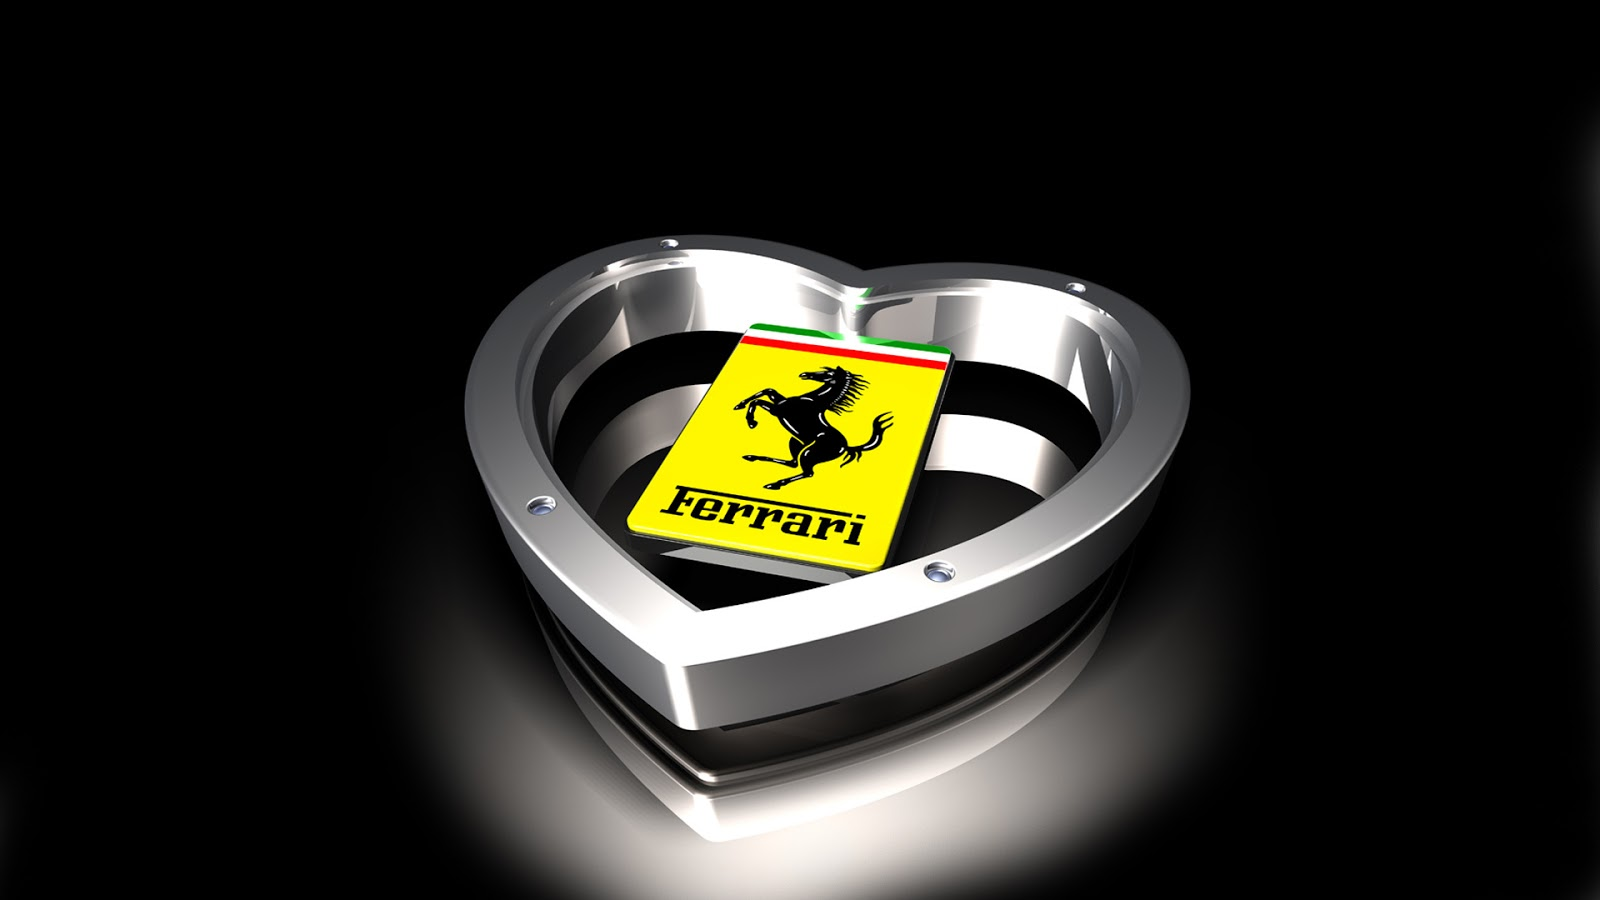 Ferrari Logo | HD Wallpapers (High Definition) | Free Background